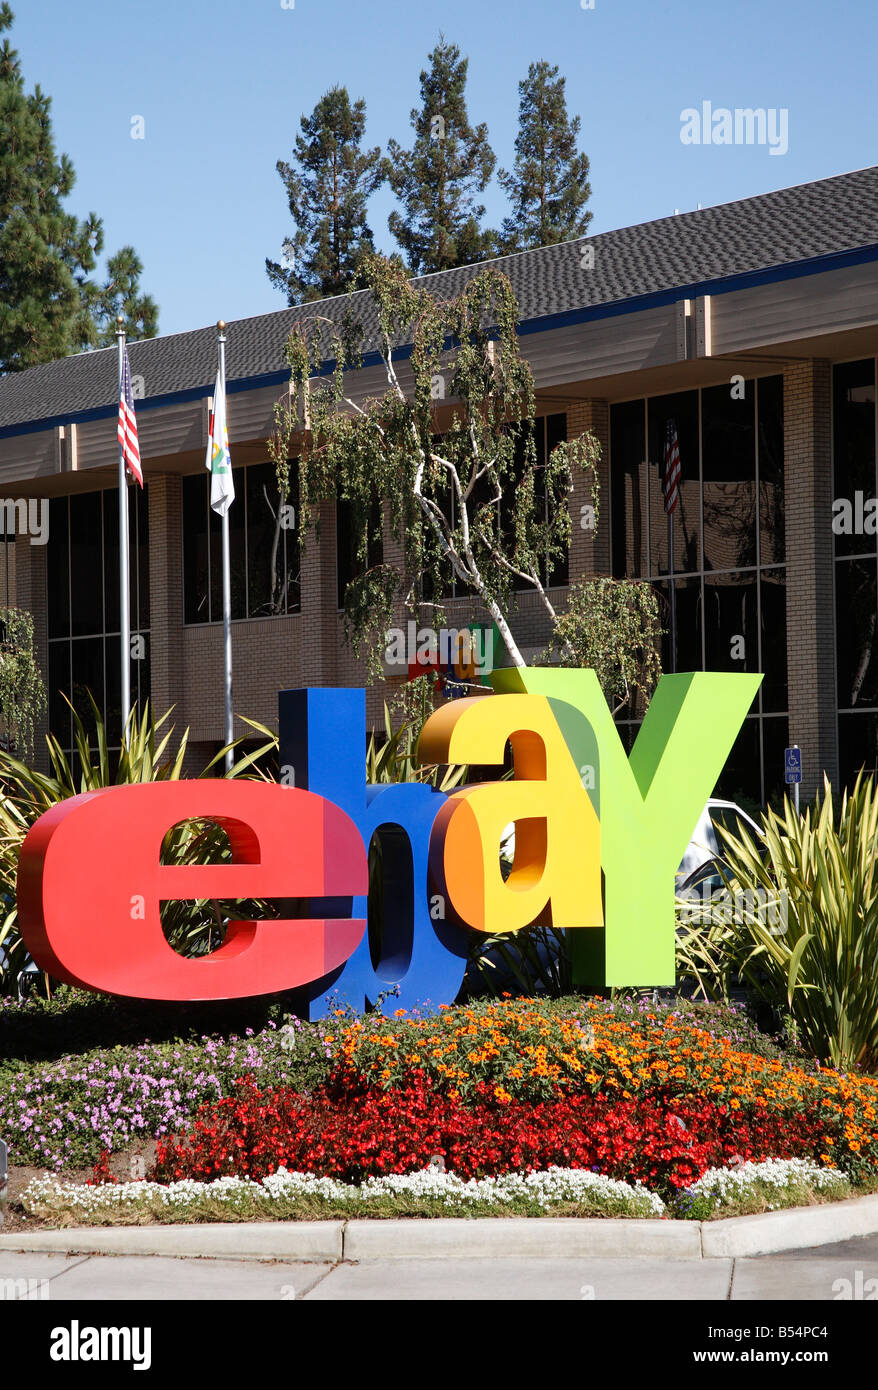 ebay corporate headquarters in San Jose California USA Stock